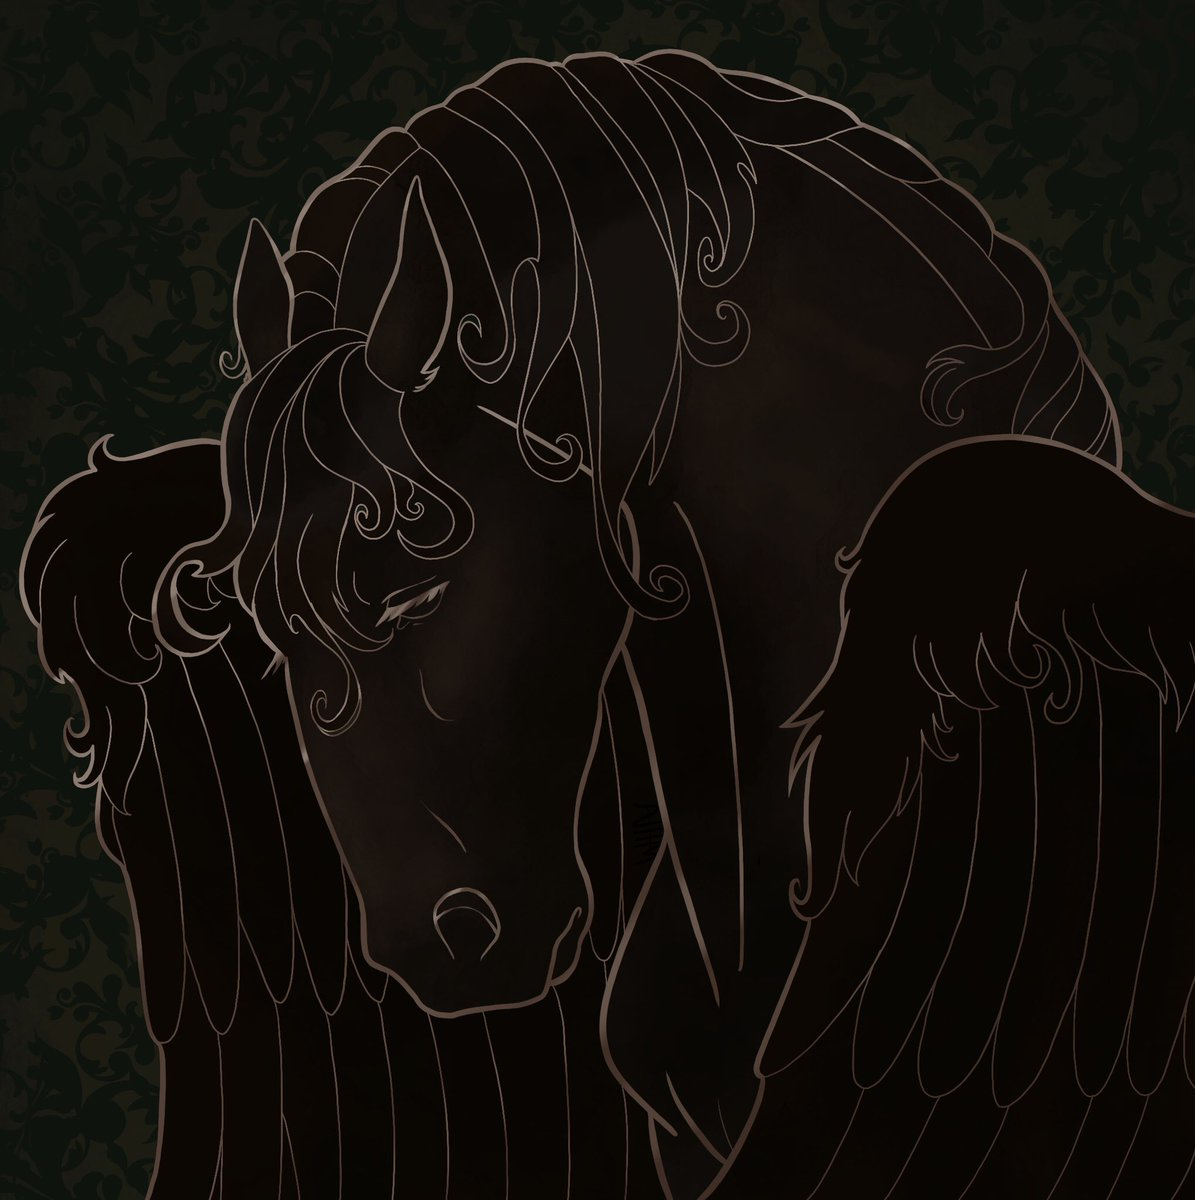 #NewProfiIePic finally did some art for myself of my horse character, was trying to get something that looked like metal on stone or something I rly like how it looks, maybe if y'all are interested I could offer them as commissions #furryart